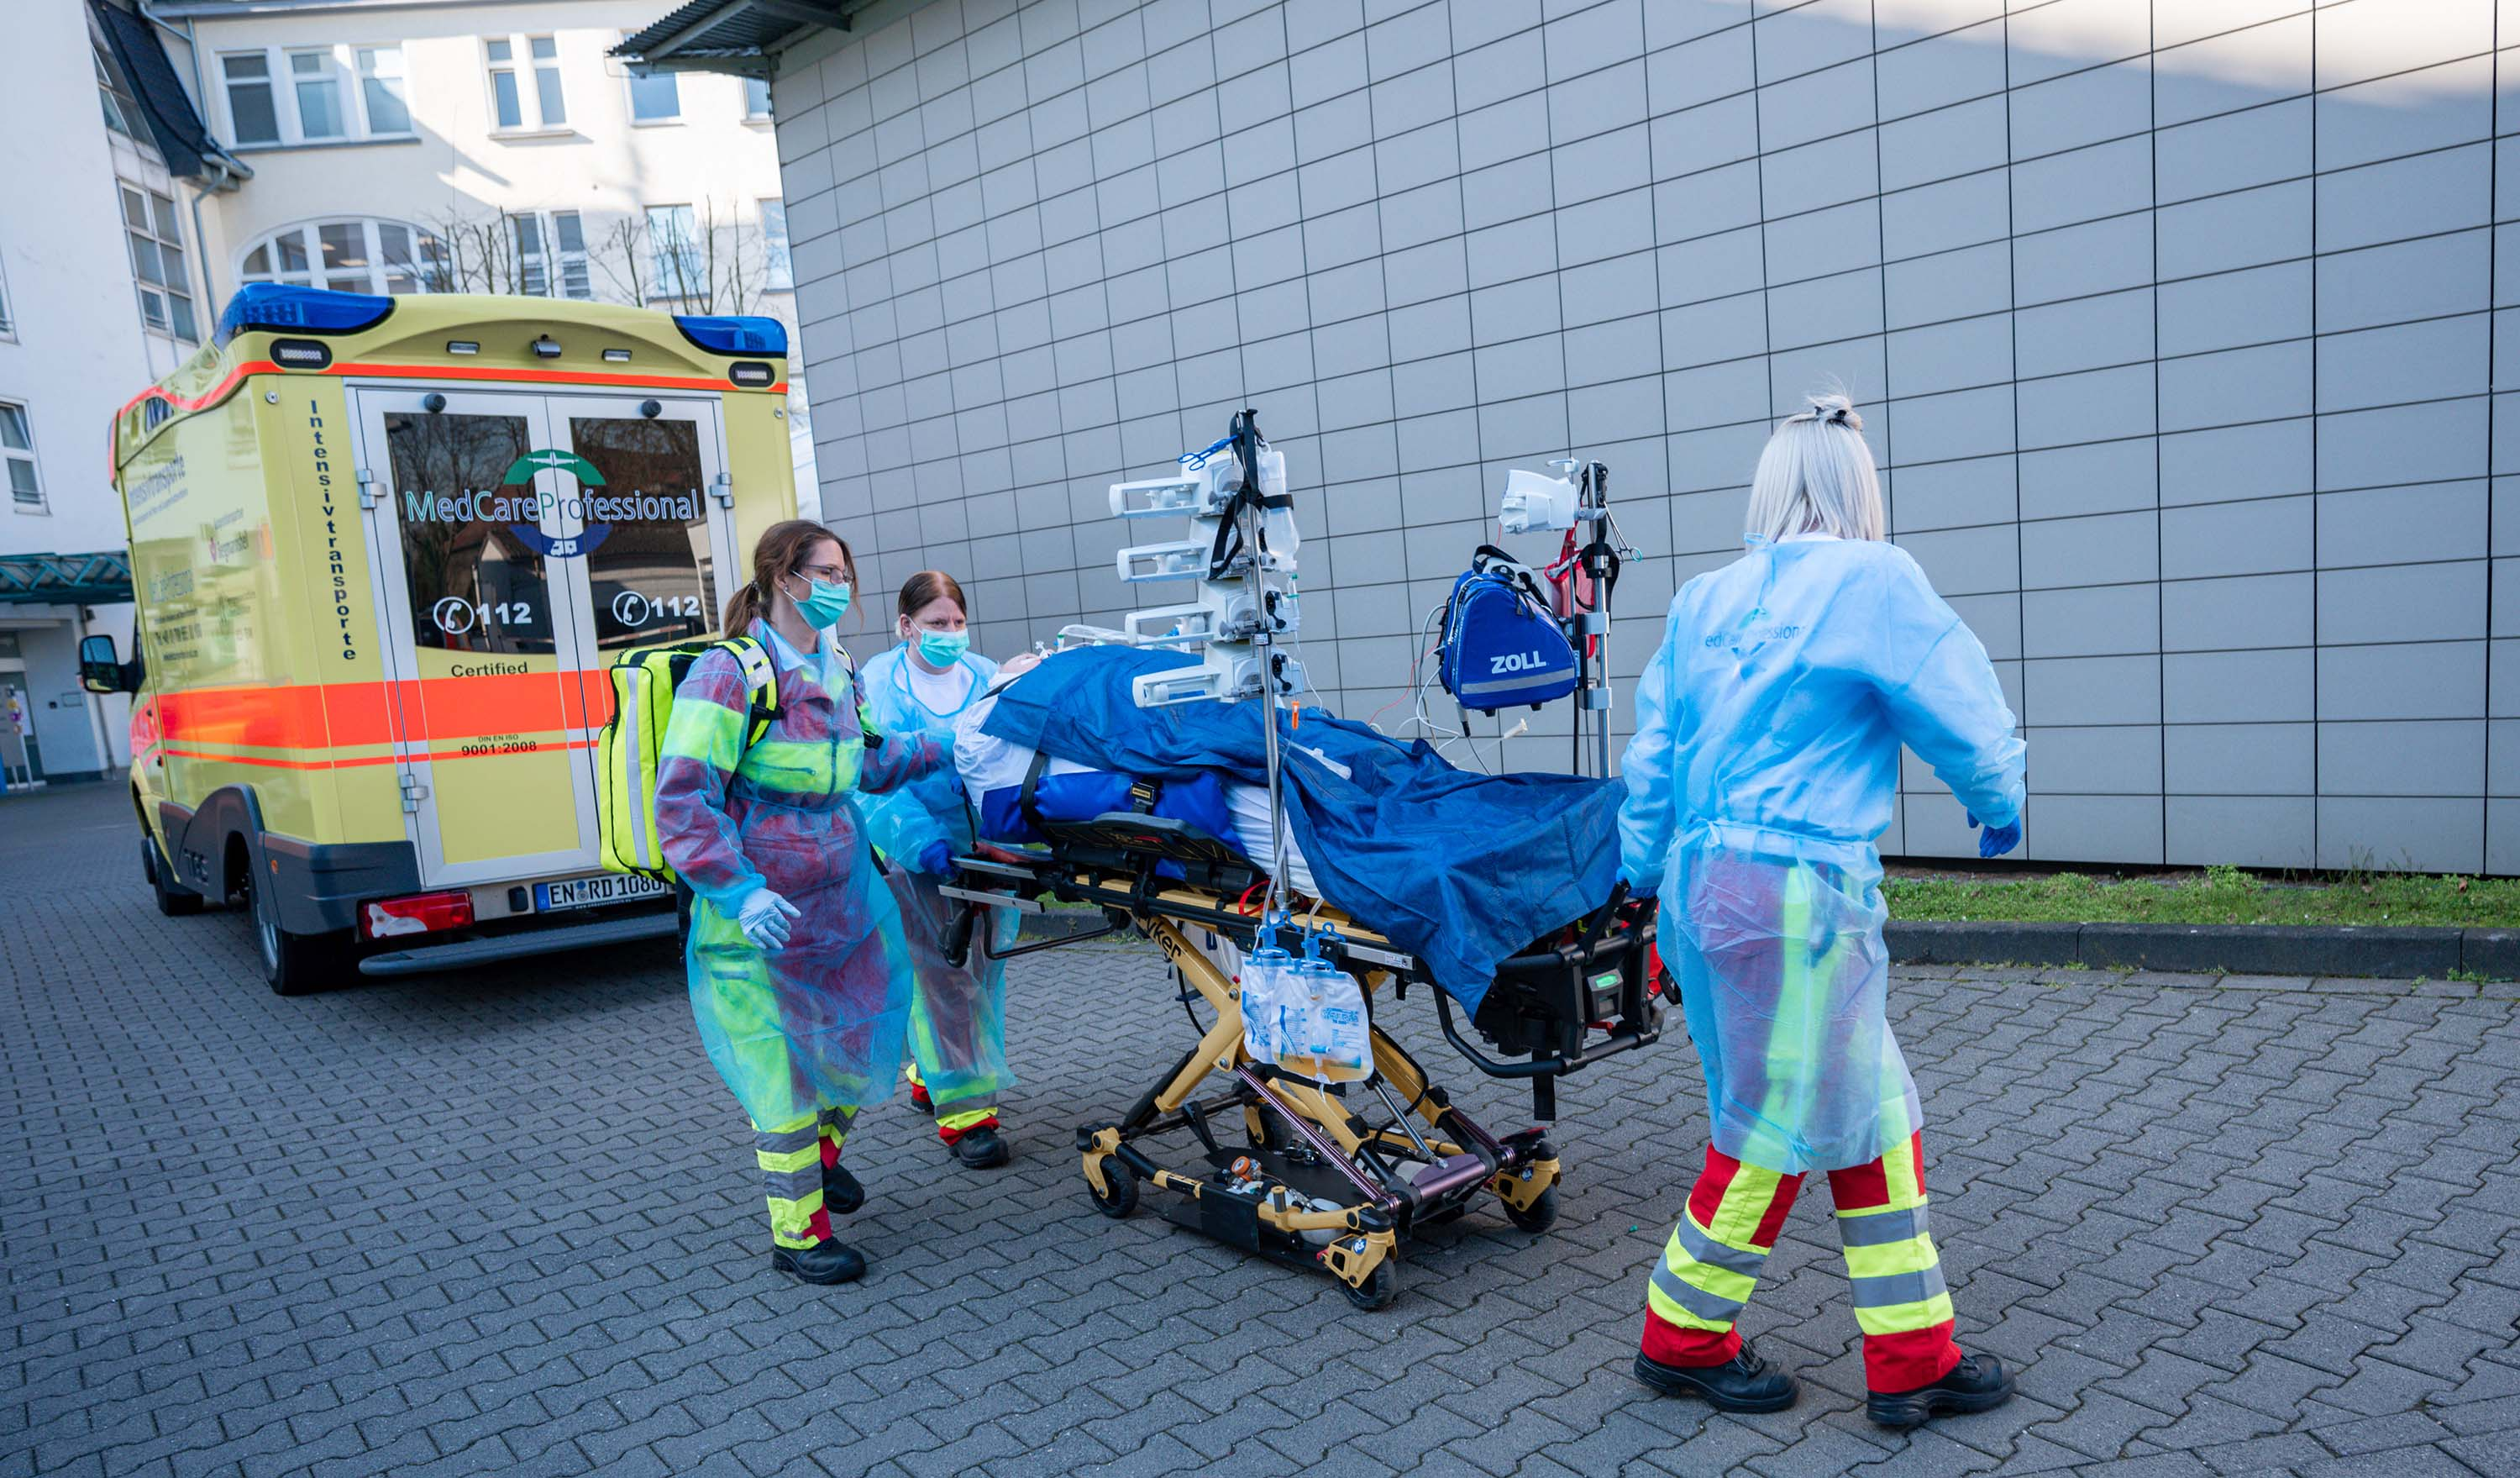 Medical staff transport a patient to the emergency room at the St. Josef Hospital in Bochum, Germany, on April 1.